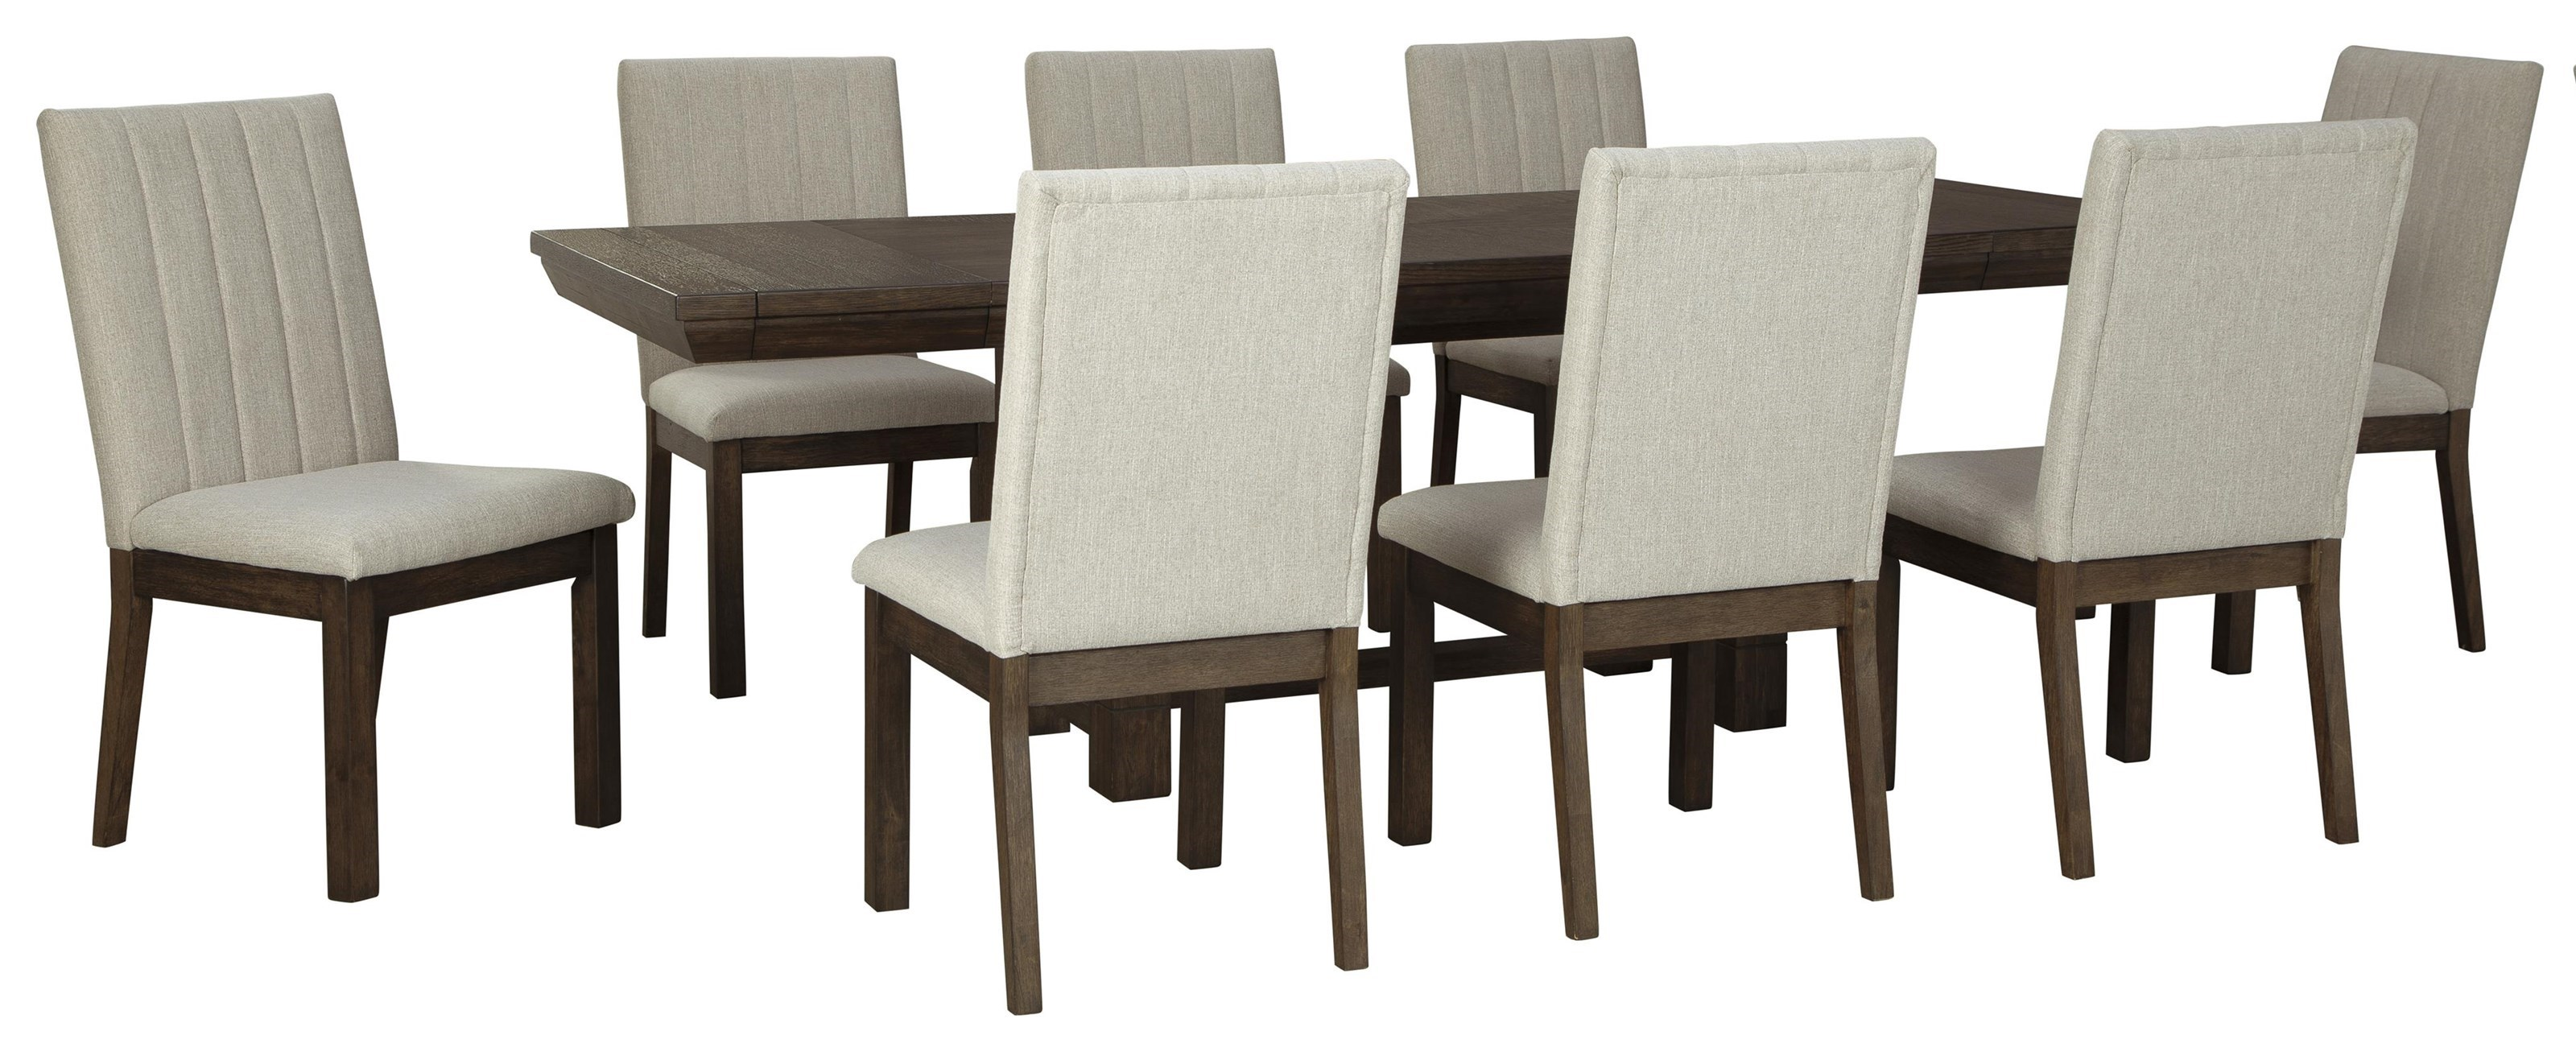 Ashley Furniture Dellbeck D748 45 8x01 9 Pc Table And 8 Uph Side Chairs Sam Levitz Furniture Dining 7 Or More Piece Sets